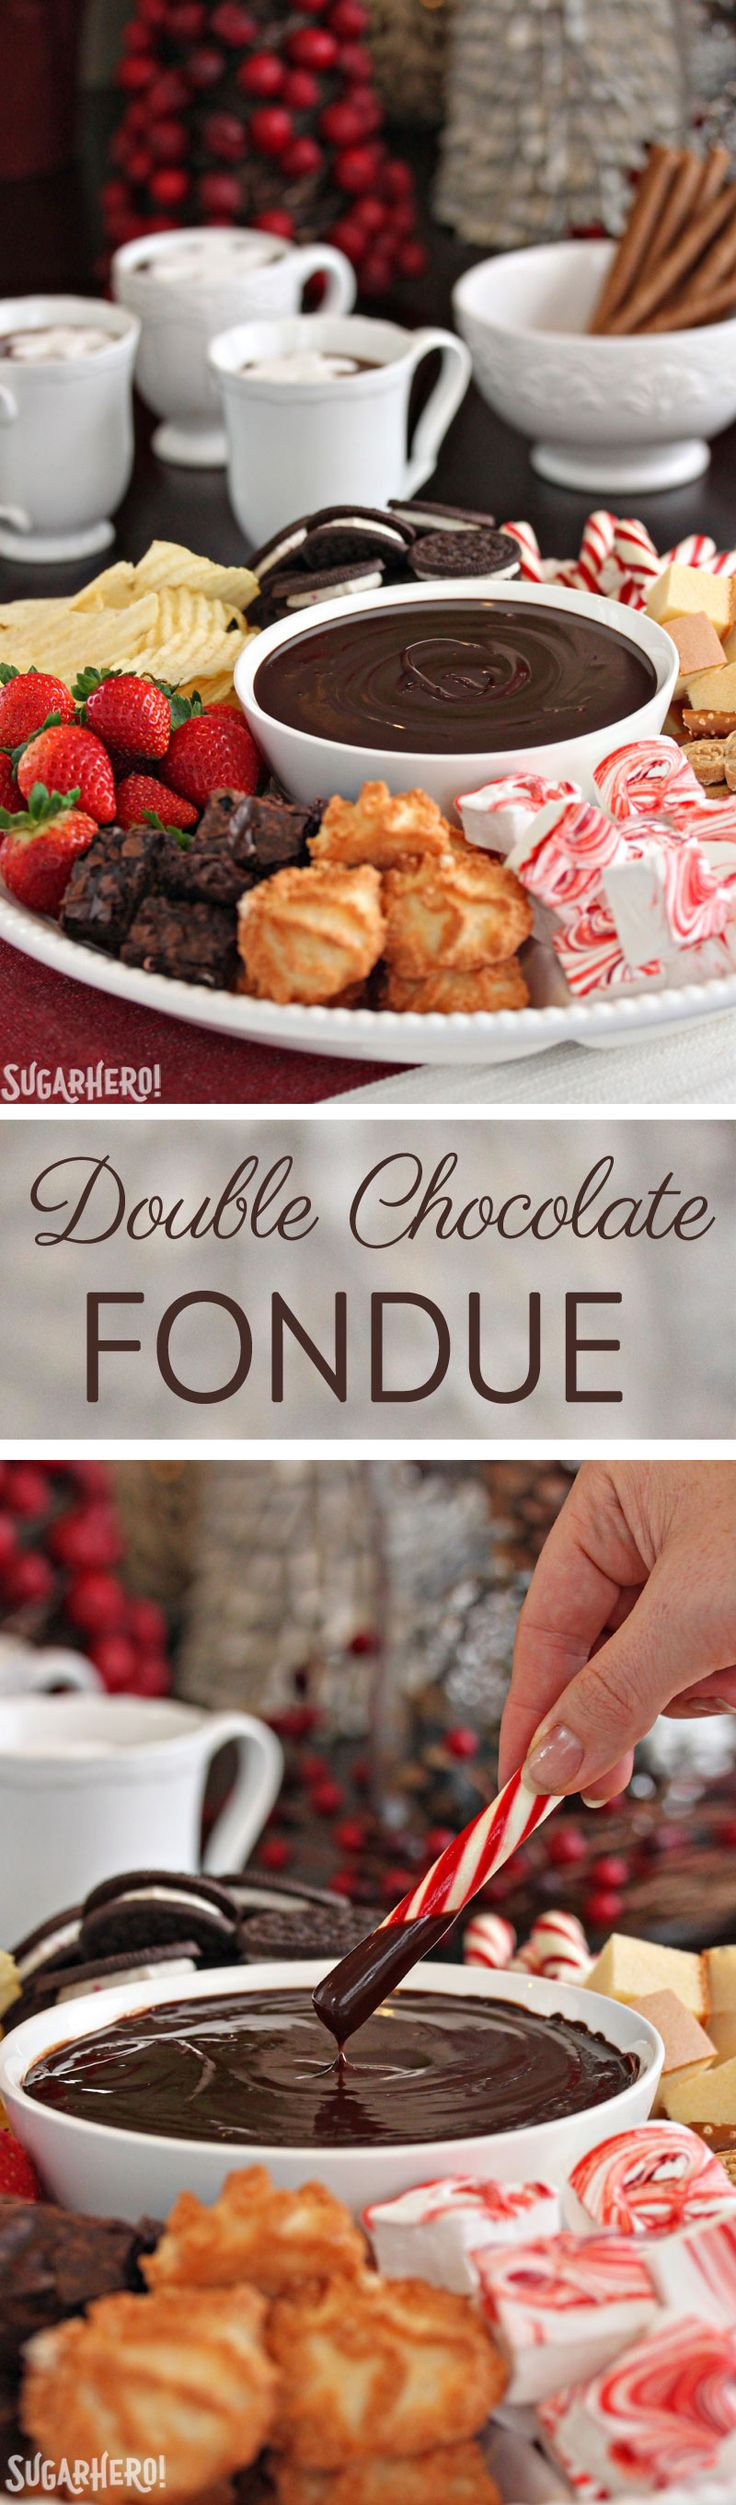 Double Chocolate Fondue, made with just 2 ingredients! Super easy and the perfect dessert for big parties! | From SugarHero.com